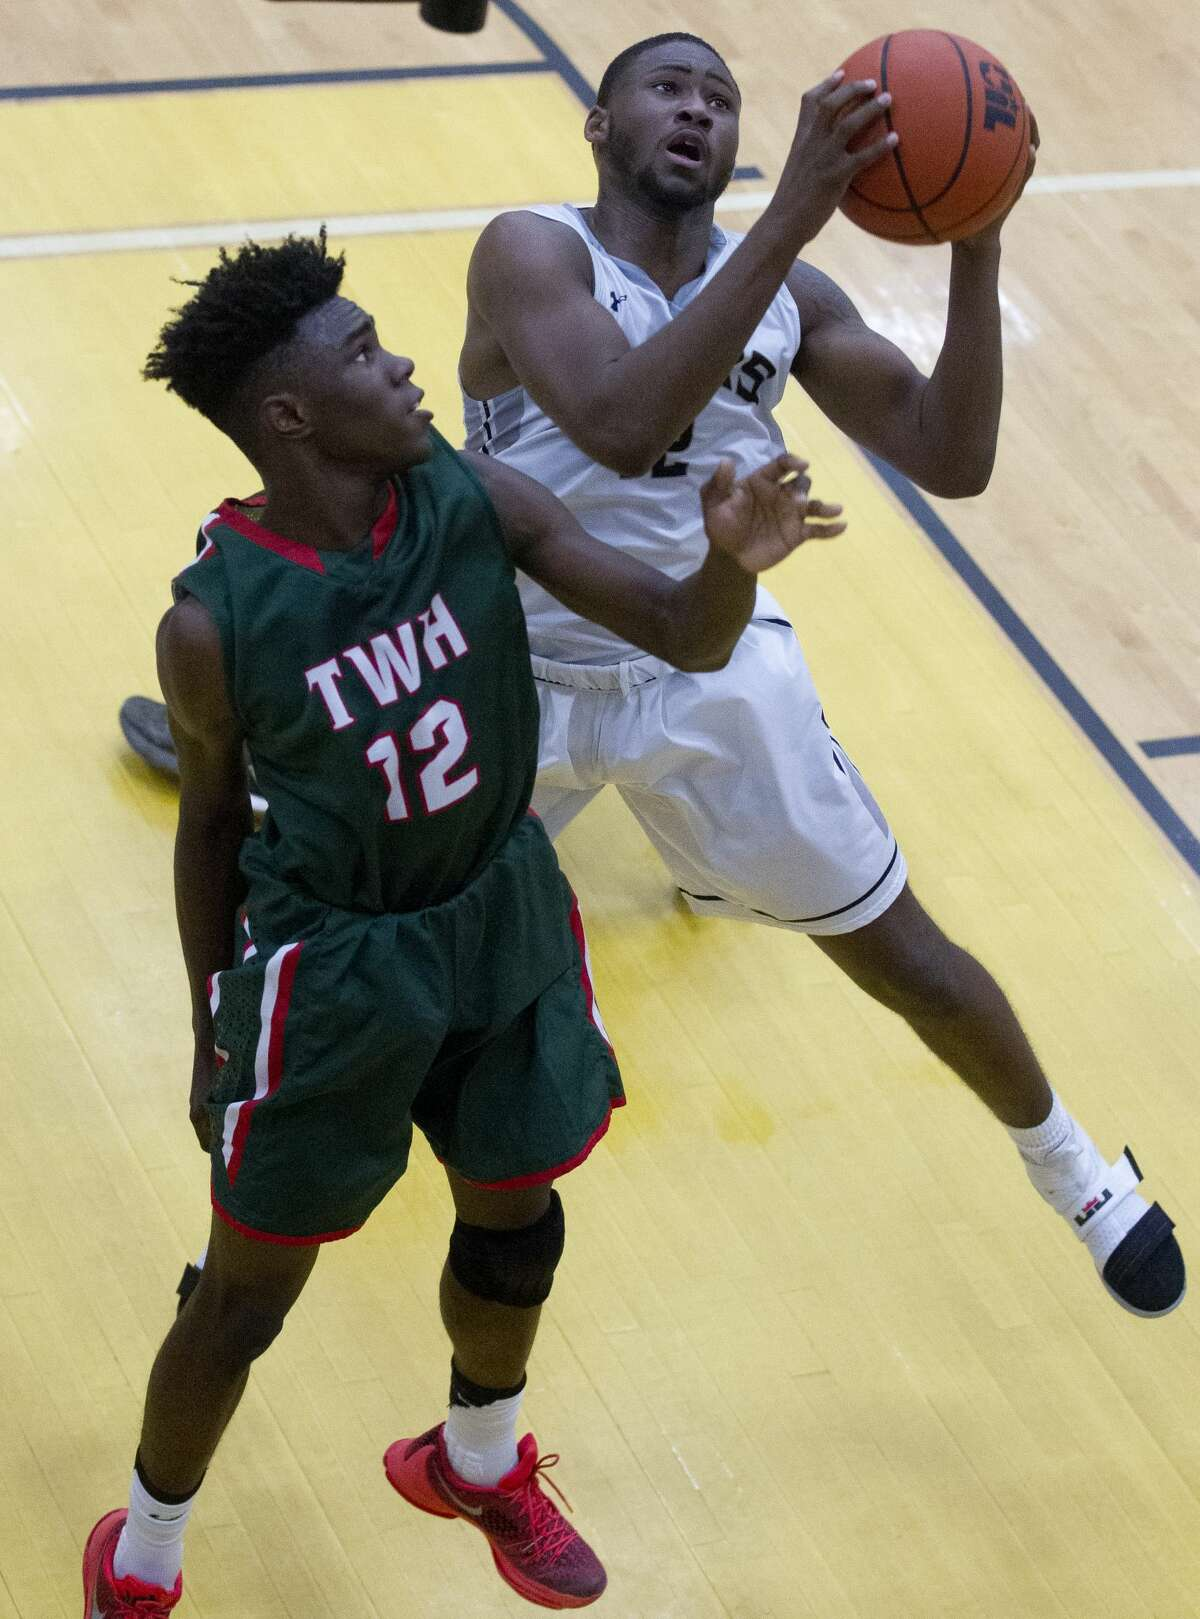 Conroe foward Quentin Brown (12) grabs a rebound over The Woodlands guard Kesean Carter (12) during the second quarter of a District 16-6A high school boys basketball game at Conroe High School Friday, Jan. 20, 2017, in Conroe. Conroe defeated The Woodlands 74-71 in overtime for the Tigers' first win over the Highlanders since 2008.